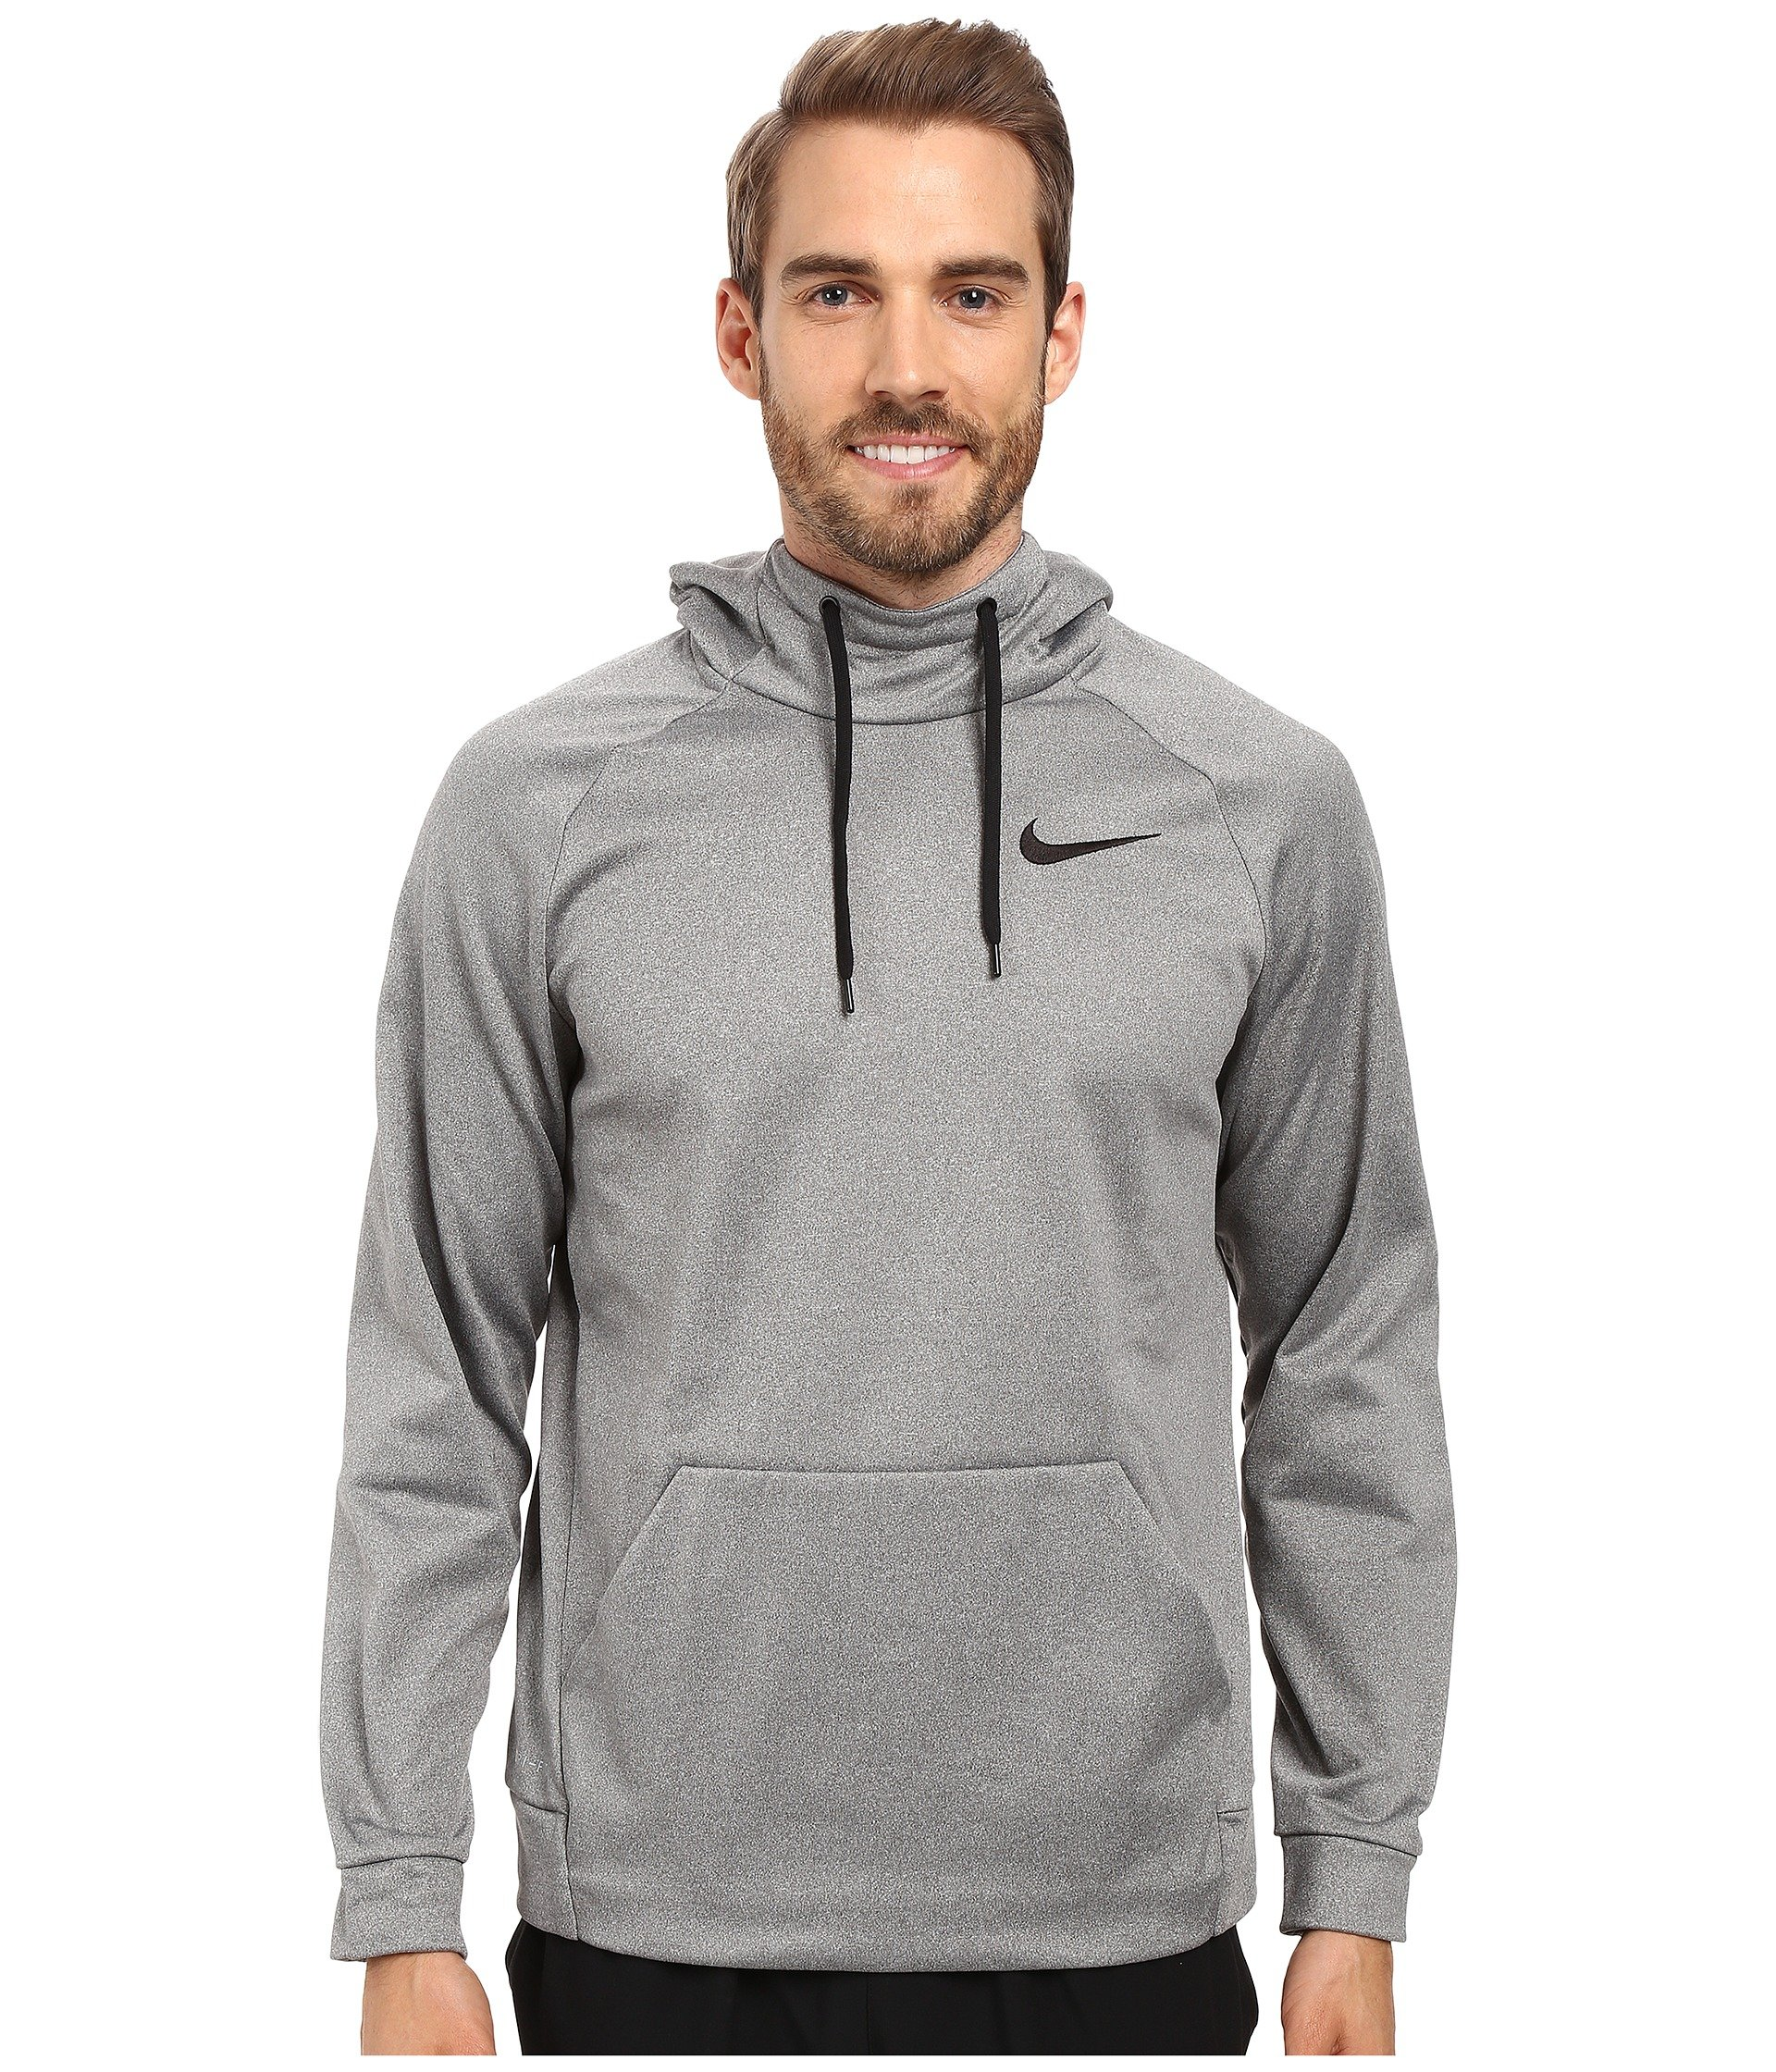 Nike Men's Therma Training Hoodie Carbon Heather/Black Size Large by Nike